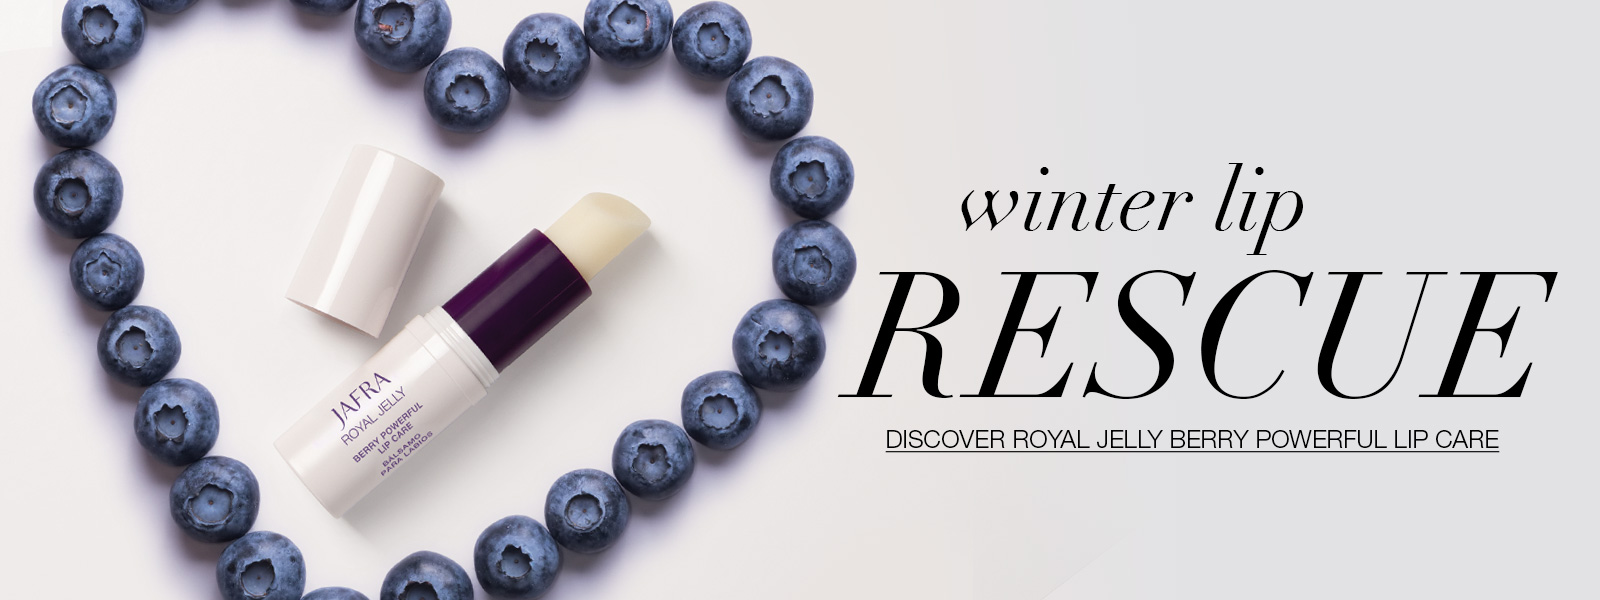 Discover Royal Jelly Berry Powerful Lip Care